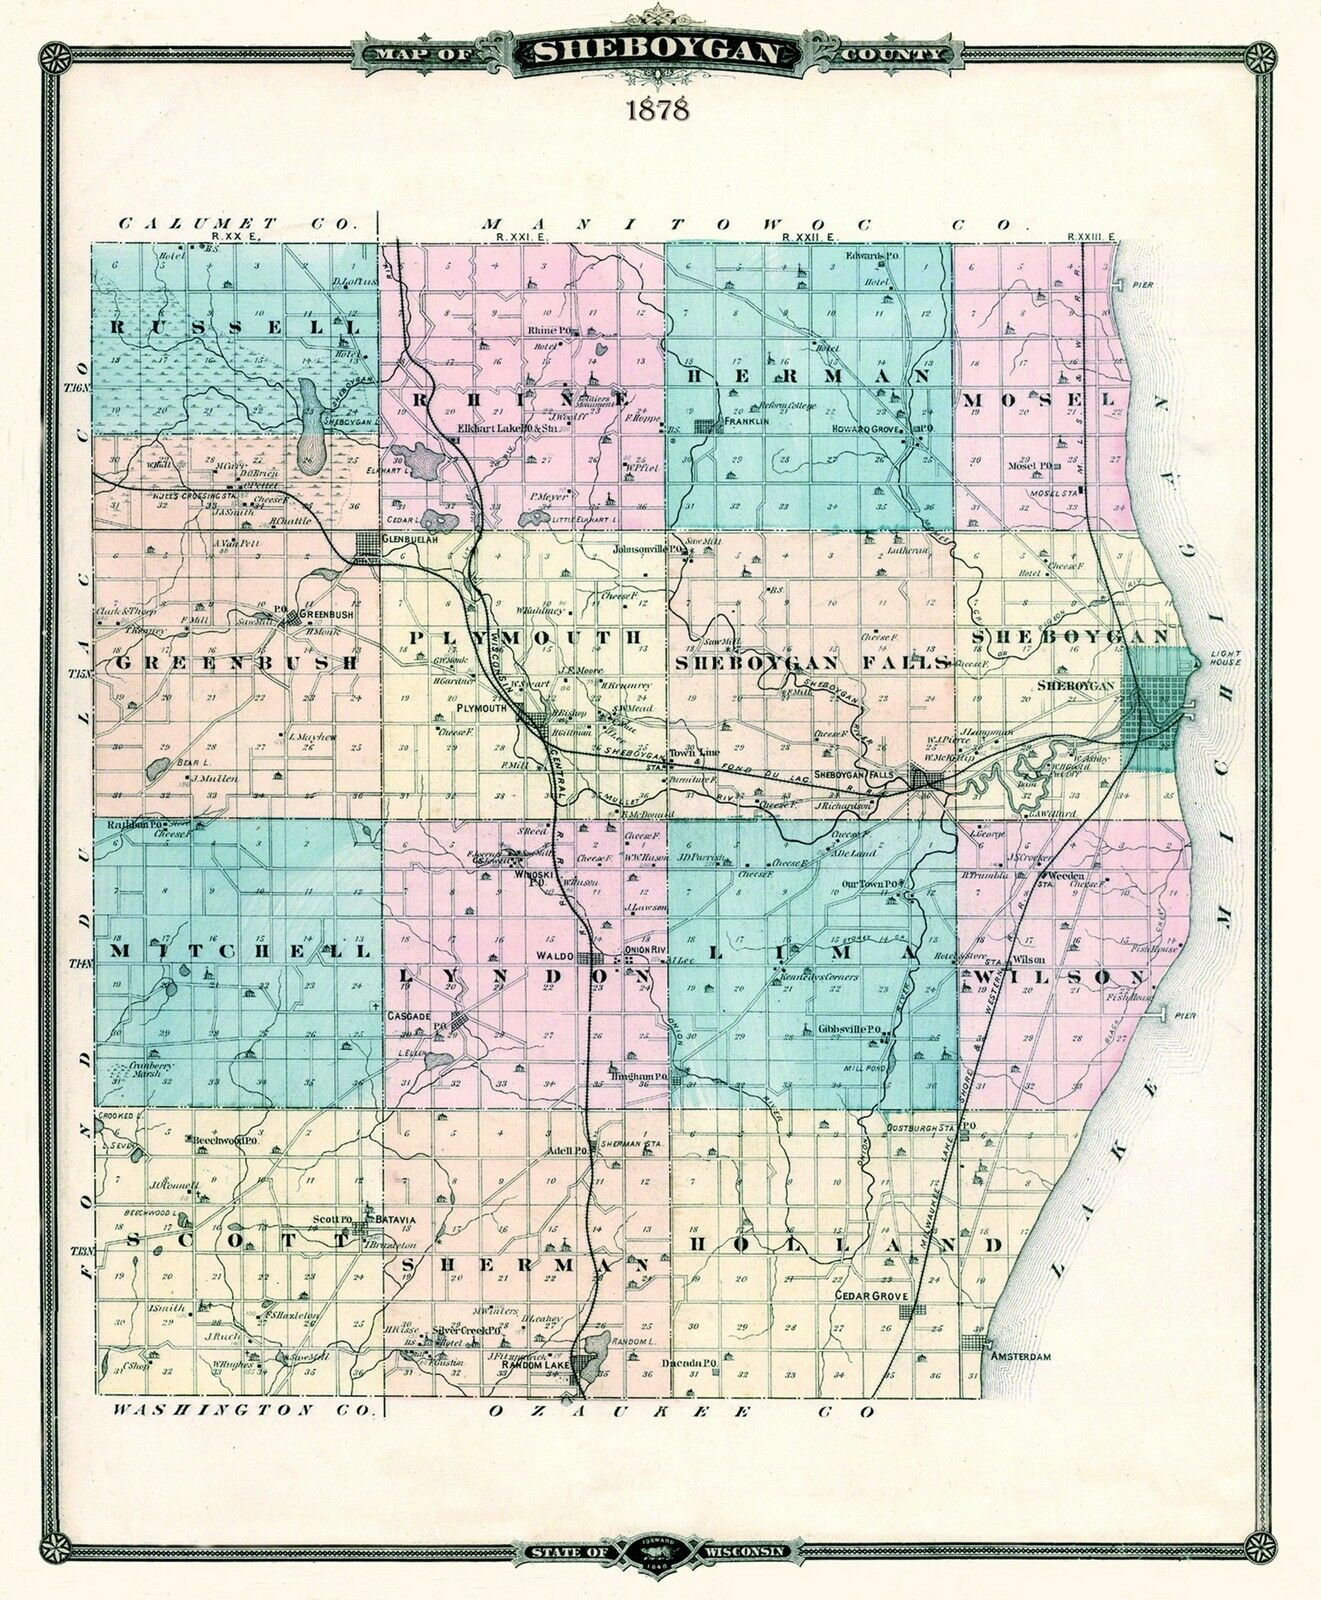 Wisconsin County Map Gis Sheboygan 8